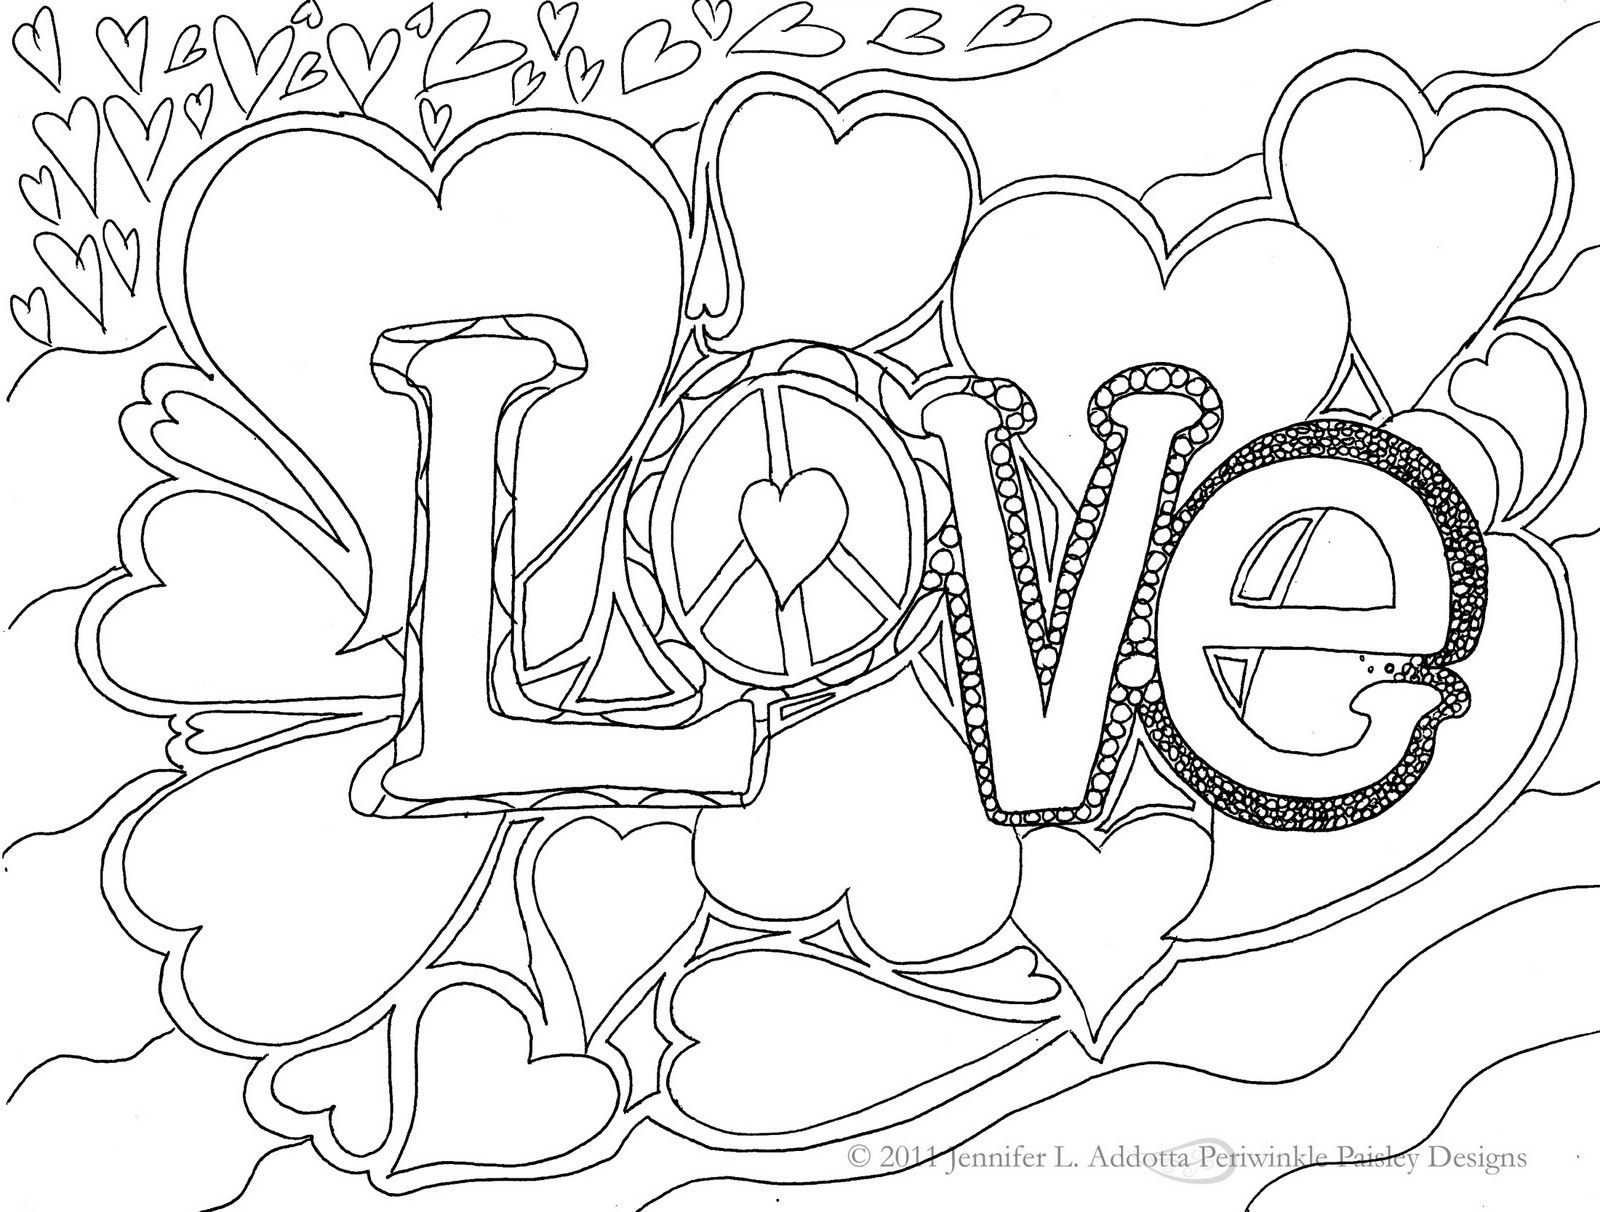 Printable Coloring Pages Love  Printable Editable Blank